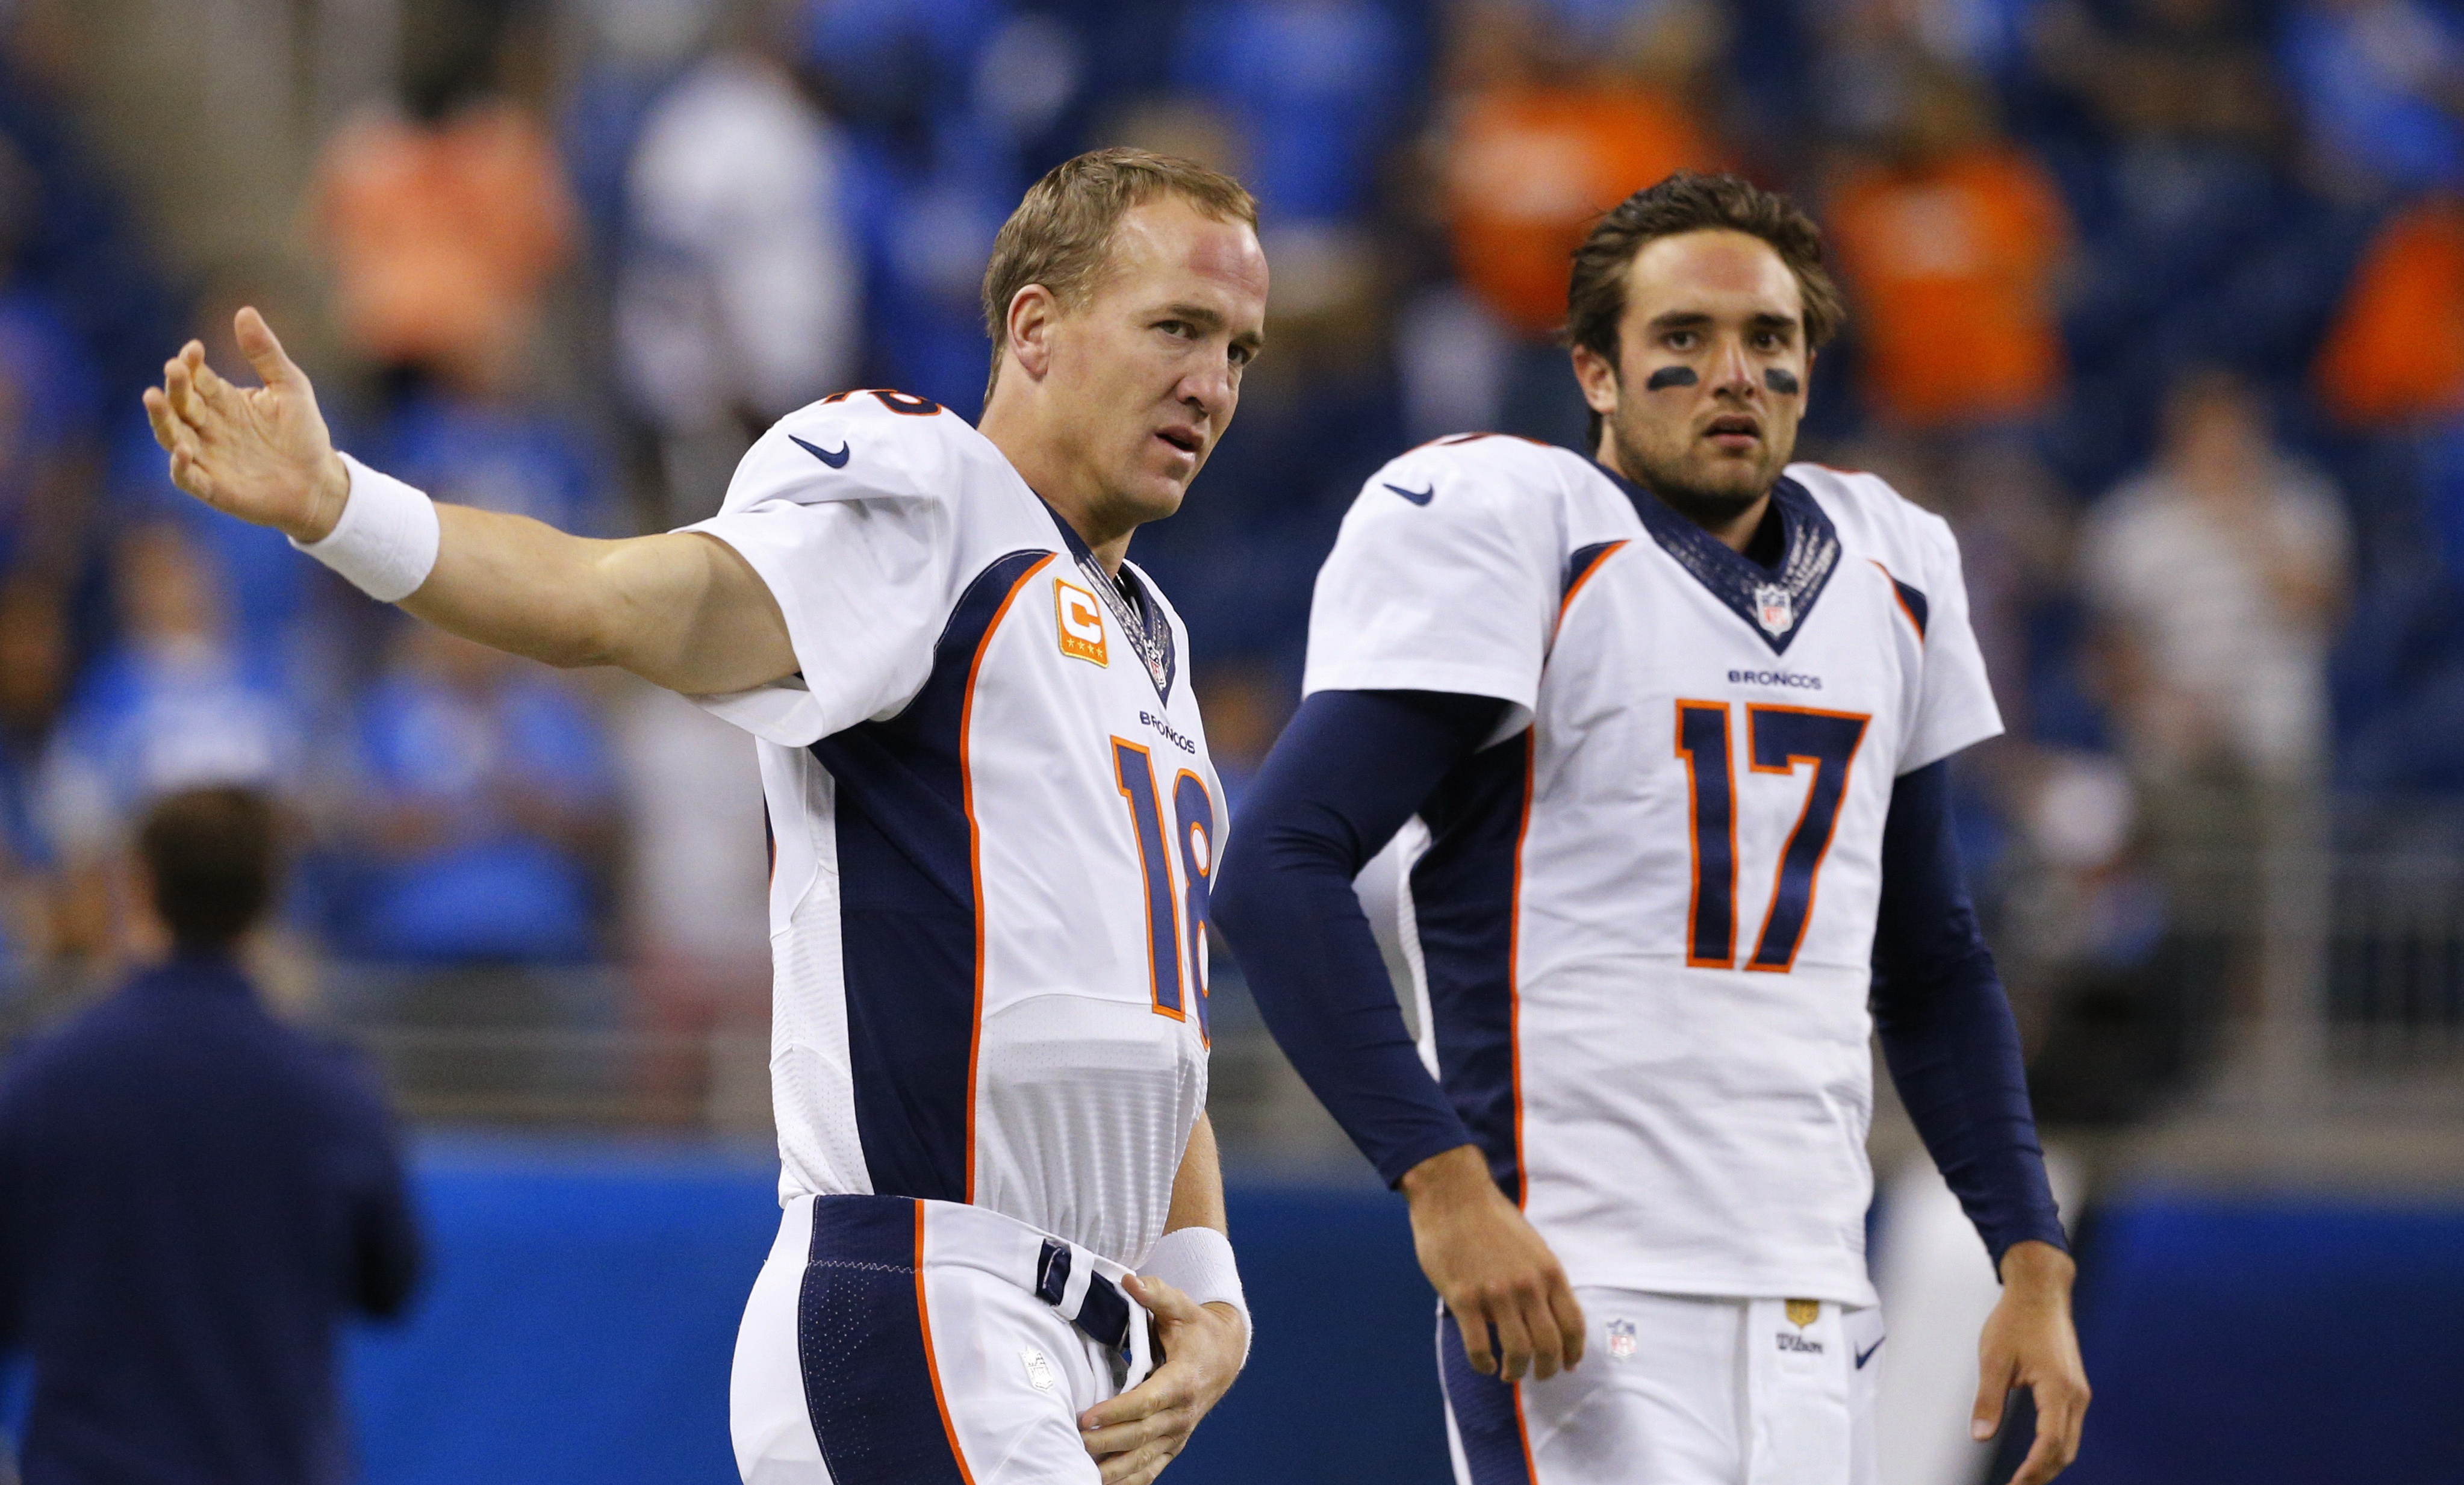 FILE - In this Sept. 27, 2015, file photo, Denver Broncos quarterbacks Peyton Manning (18) and Brock Osweiler (17) get ready for the Broncos' NFL football game against the Detroit Lions in Detroit. Osweiler gets his first NFL start in his fourth pro seaso